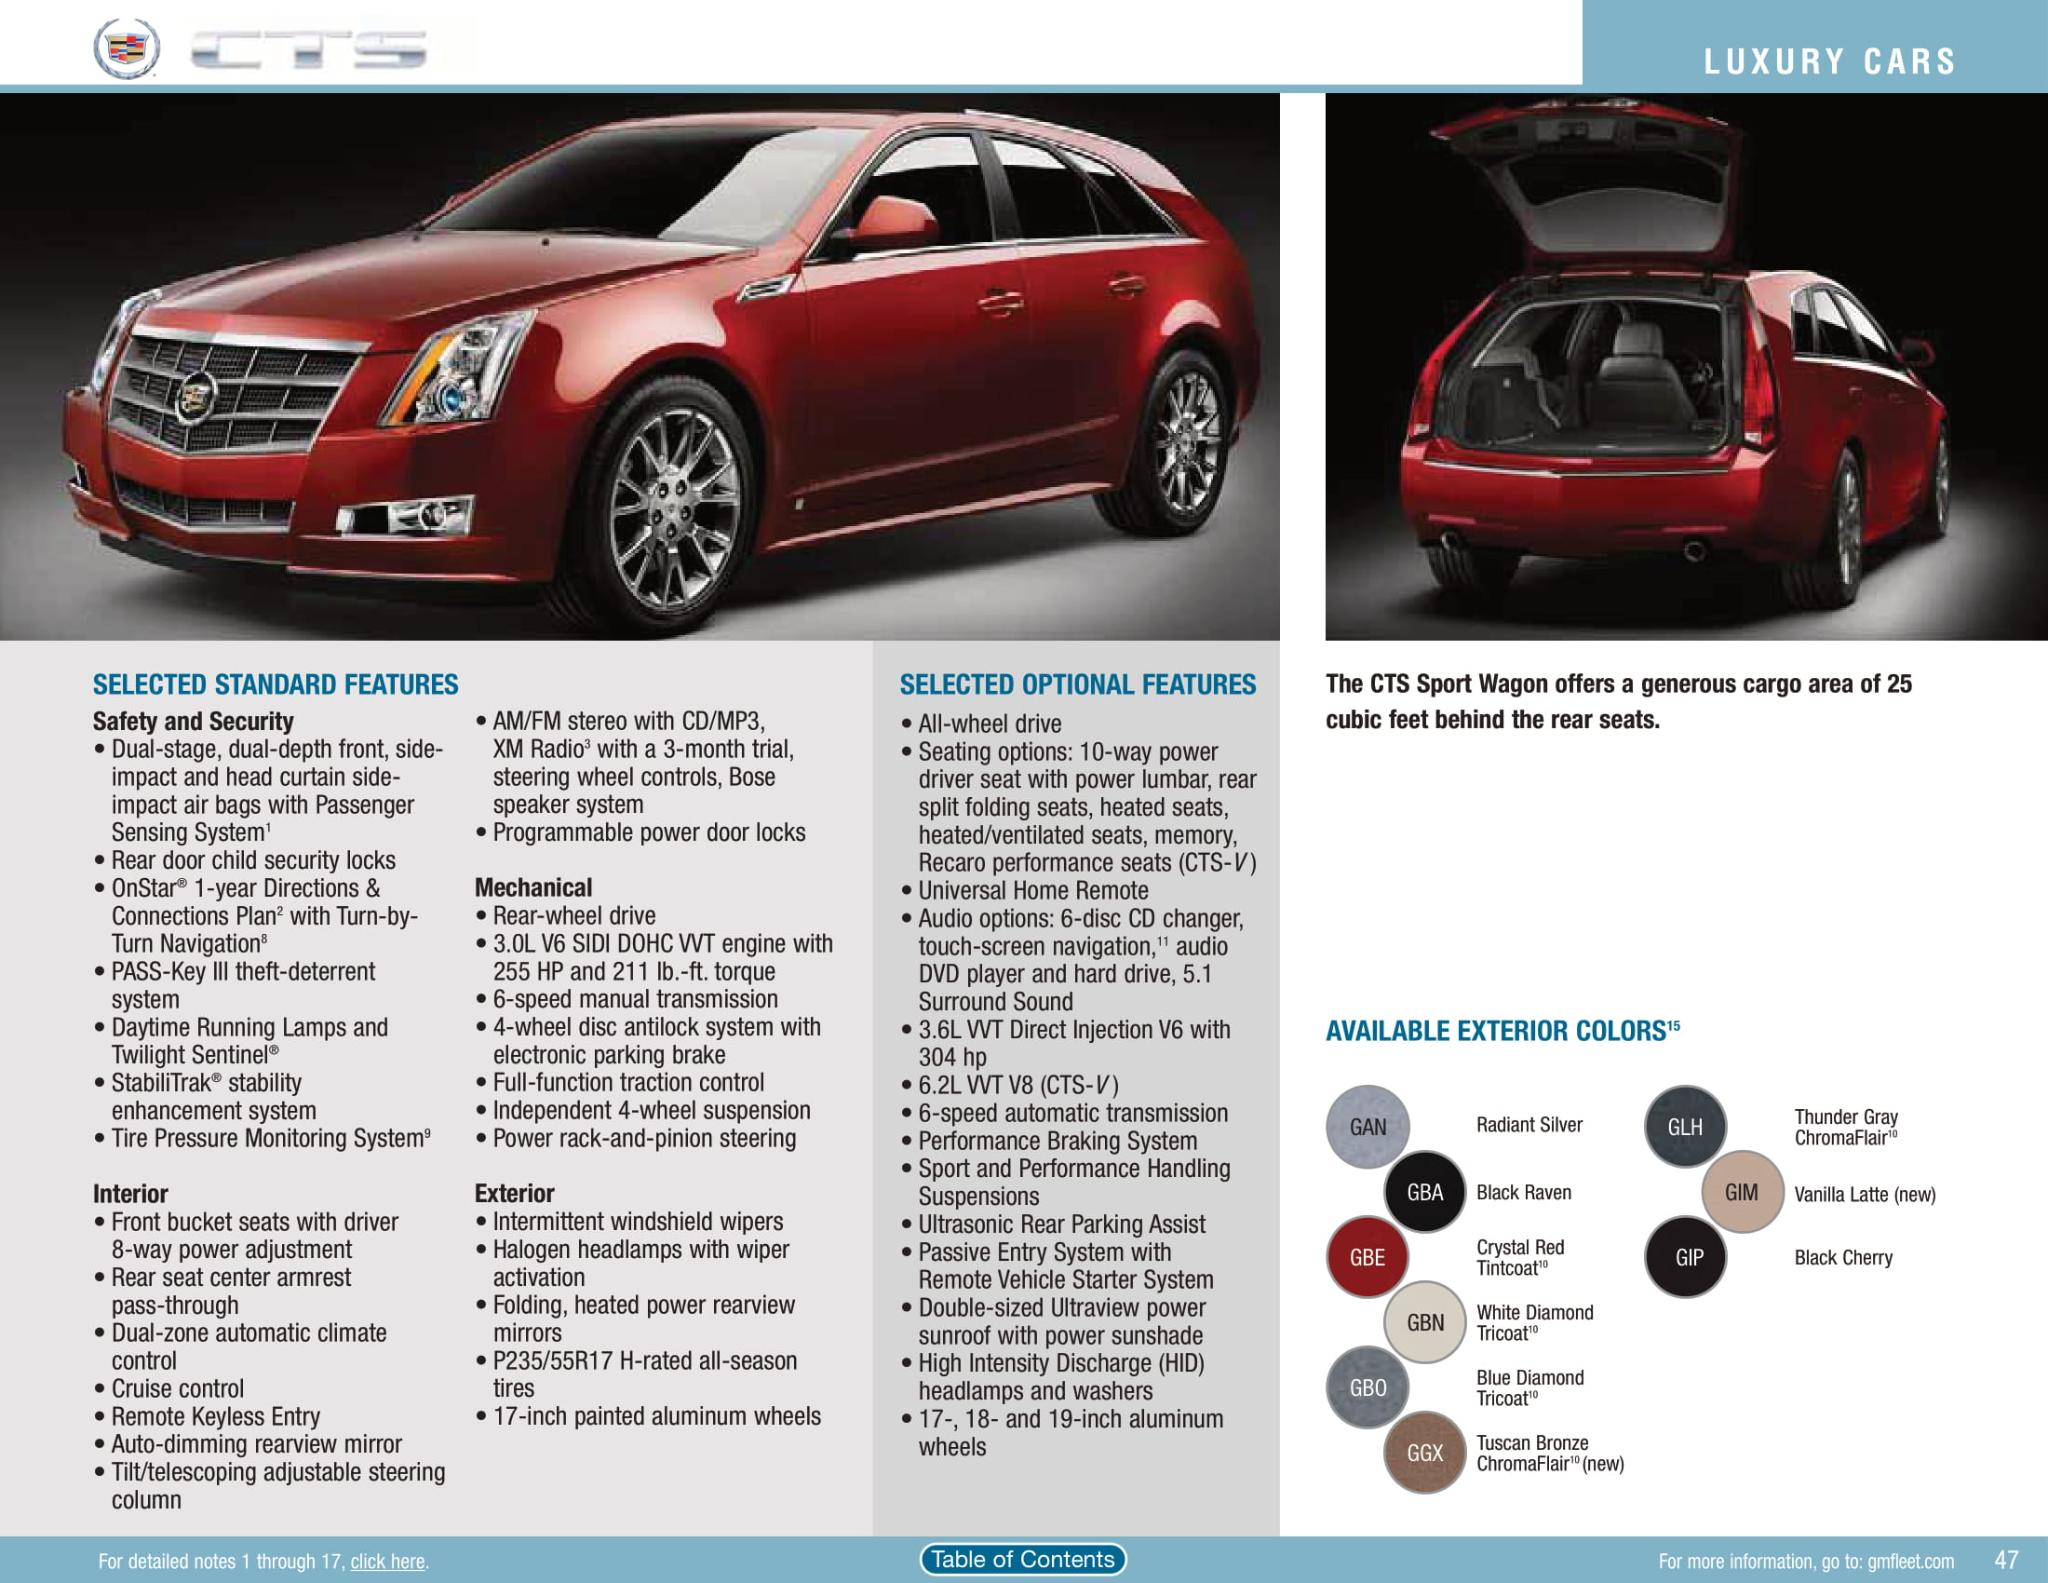 exterior colors options used on cts in 2010